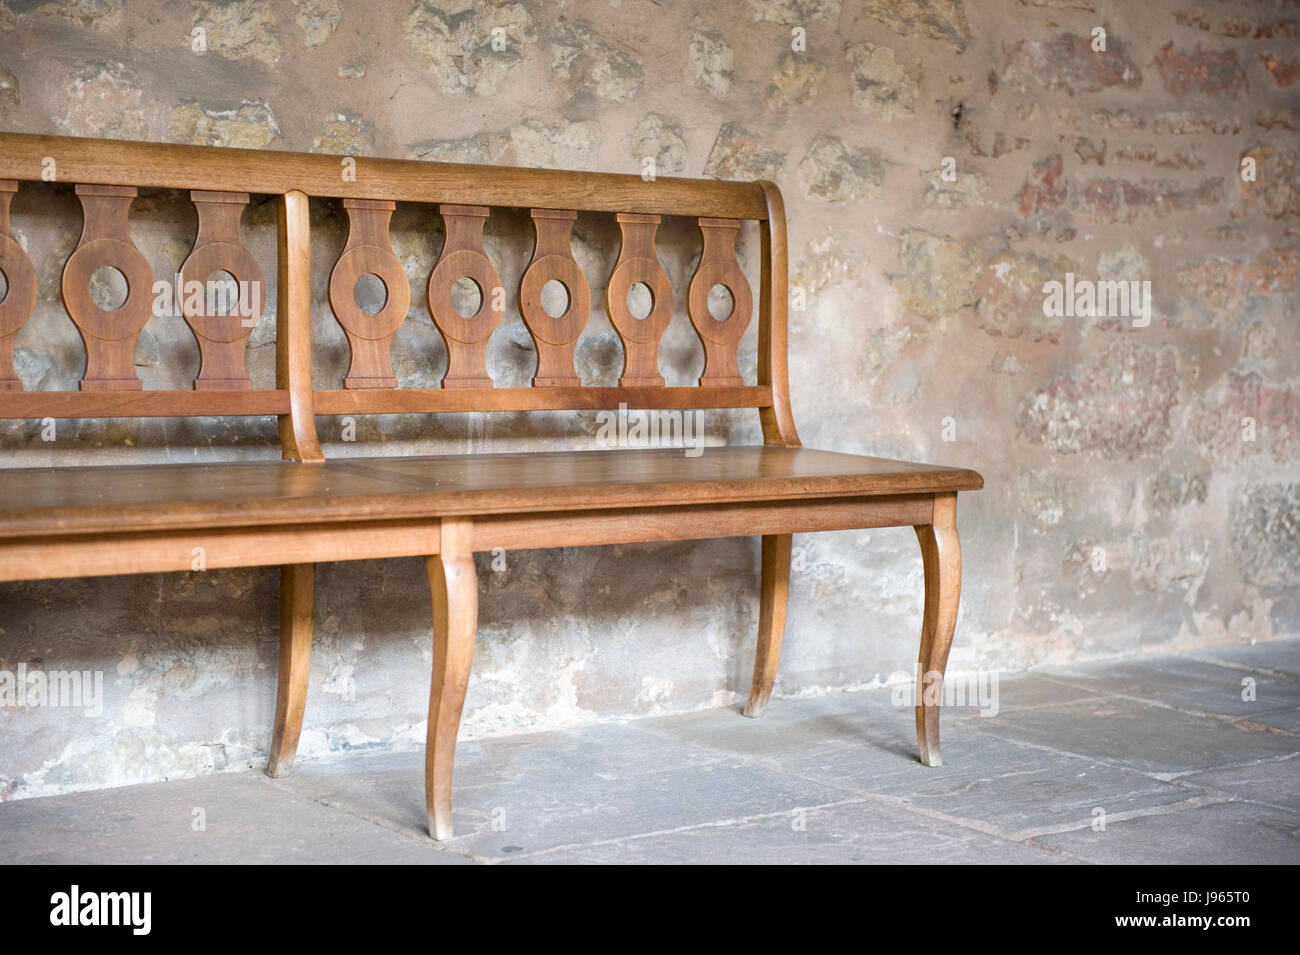 Sensational Wood Museum Seat Bench Wooden Bench Old Wall Lamtechconsult Wood Chair Design Ideas Lamtechconsultcom